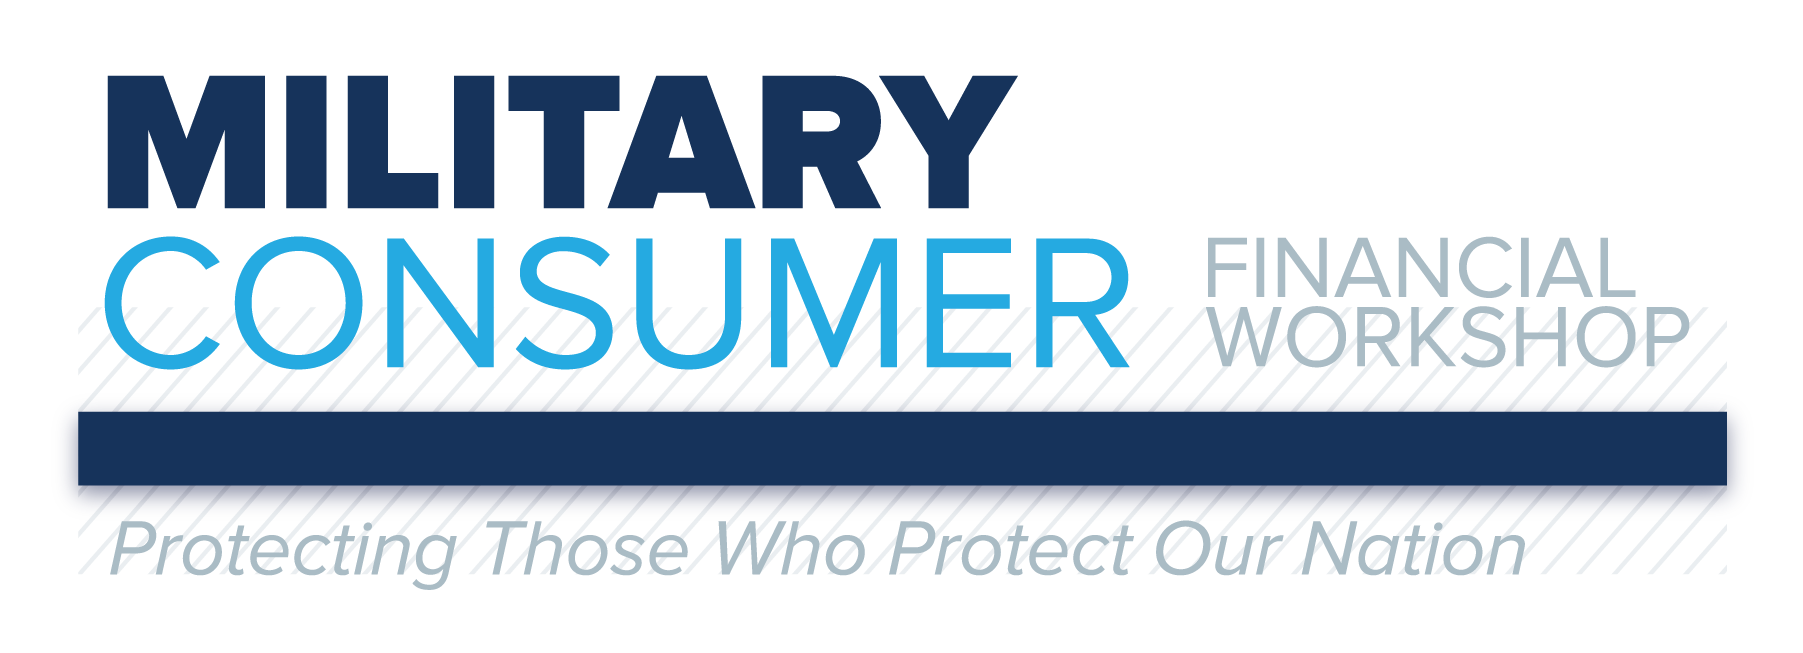 Military Consumer Financial Workshop: Protecting Those Who Protect Our Nation